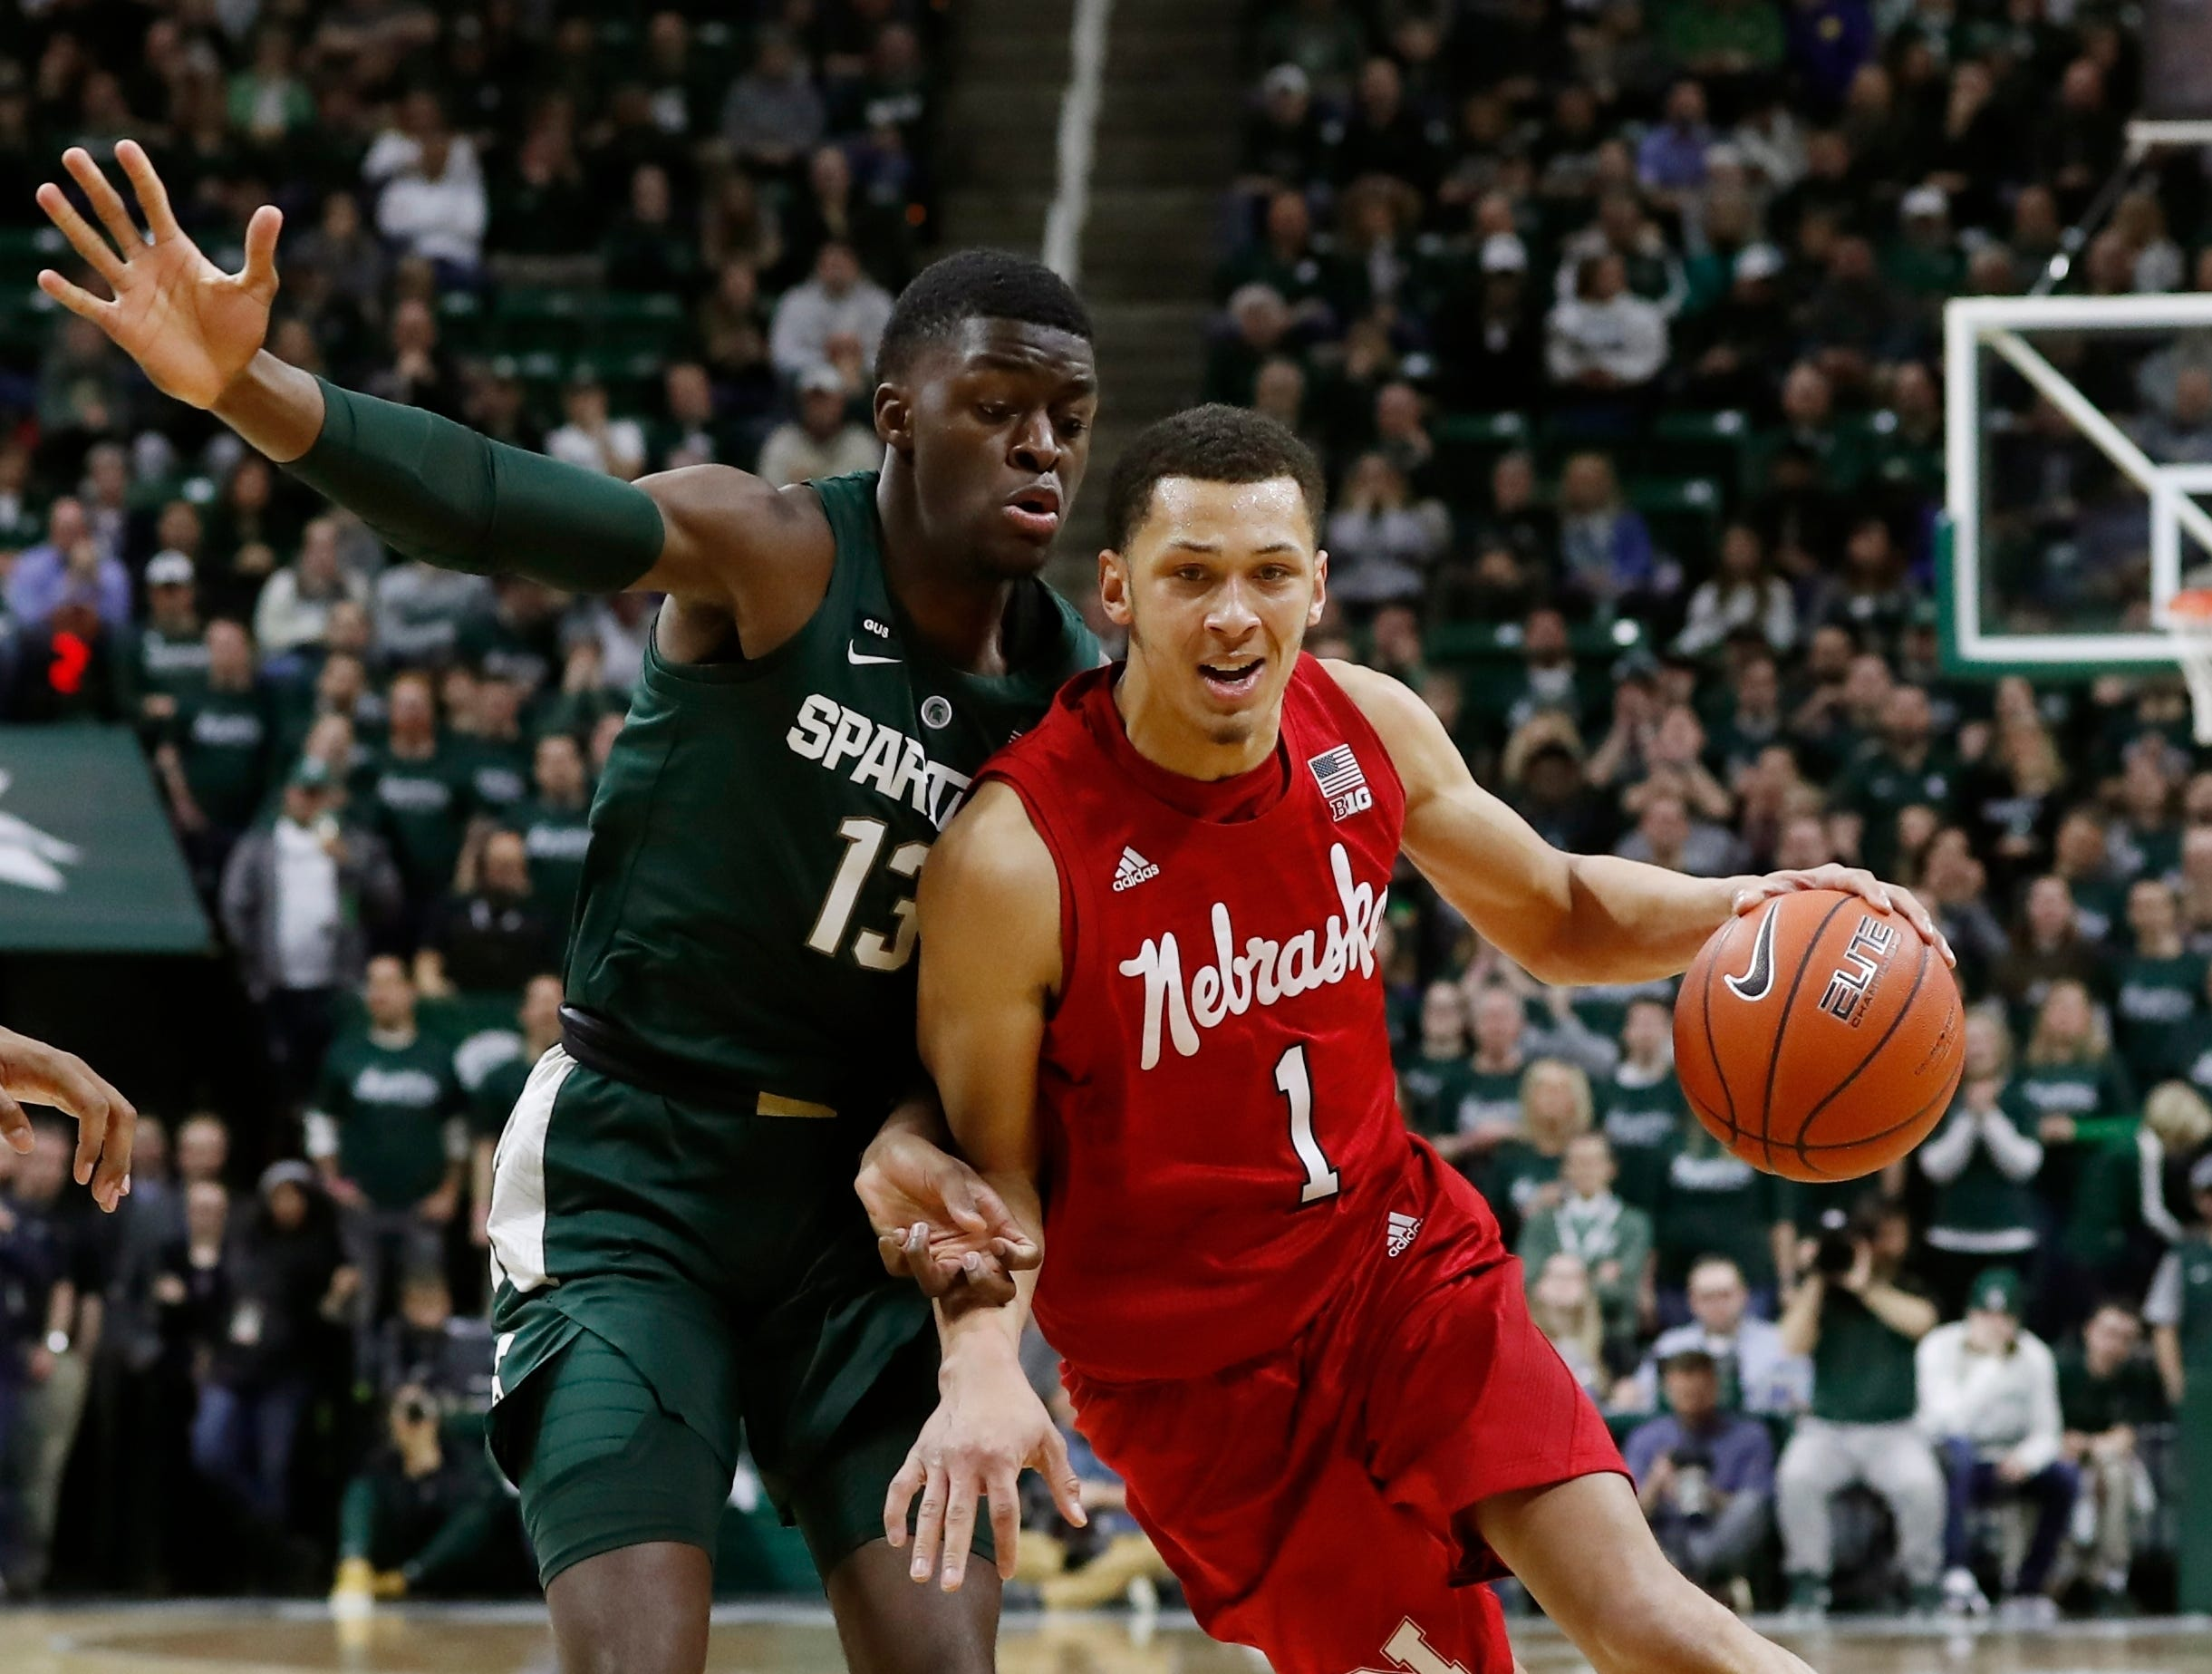 Nebraska guard Amir Harris (1) drives on Michigan State forward Gabe Brown (13) during the first half of an NCAA college basketball game.